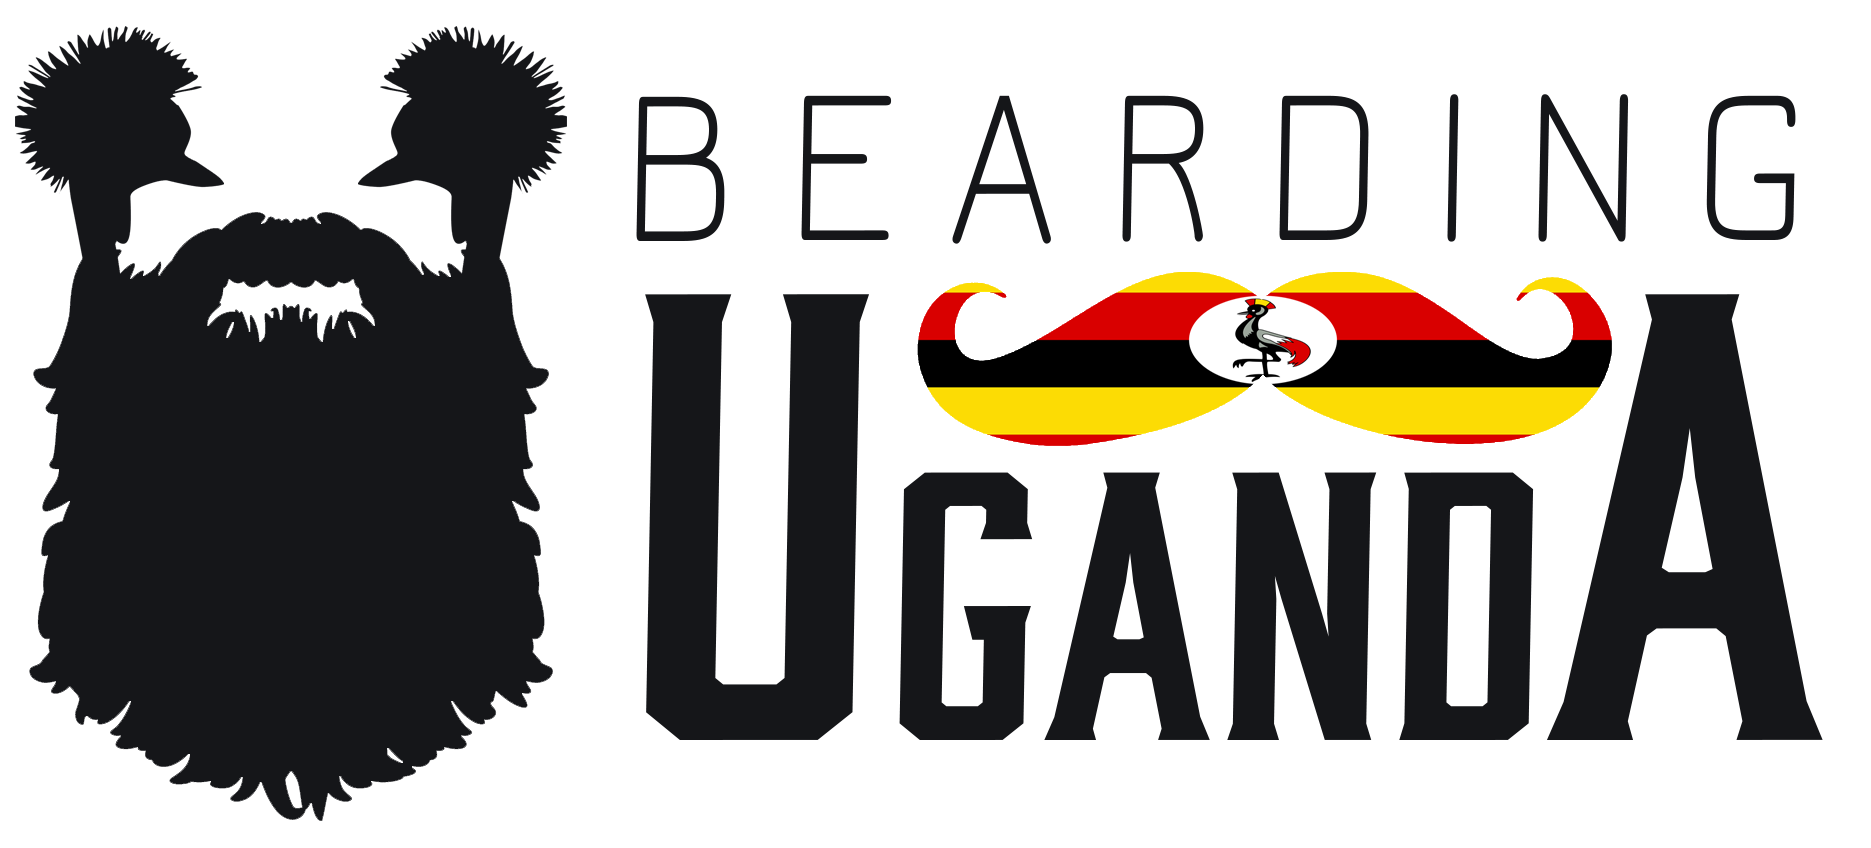 Today bearding uganda. Update clipart great news image transparent library